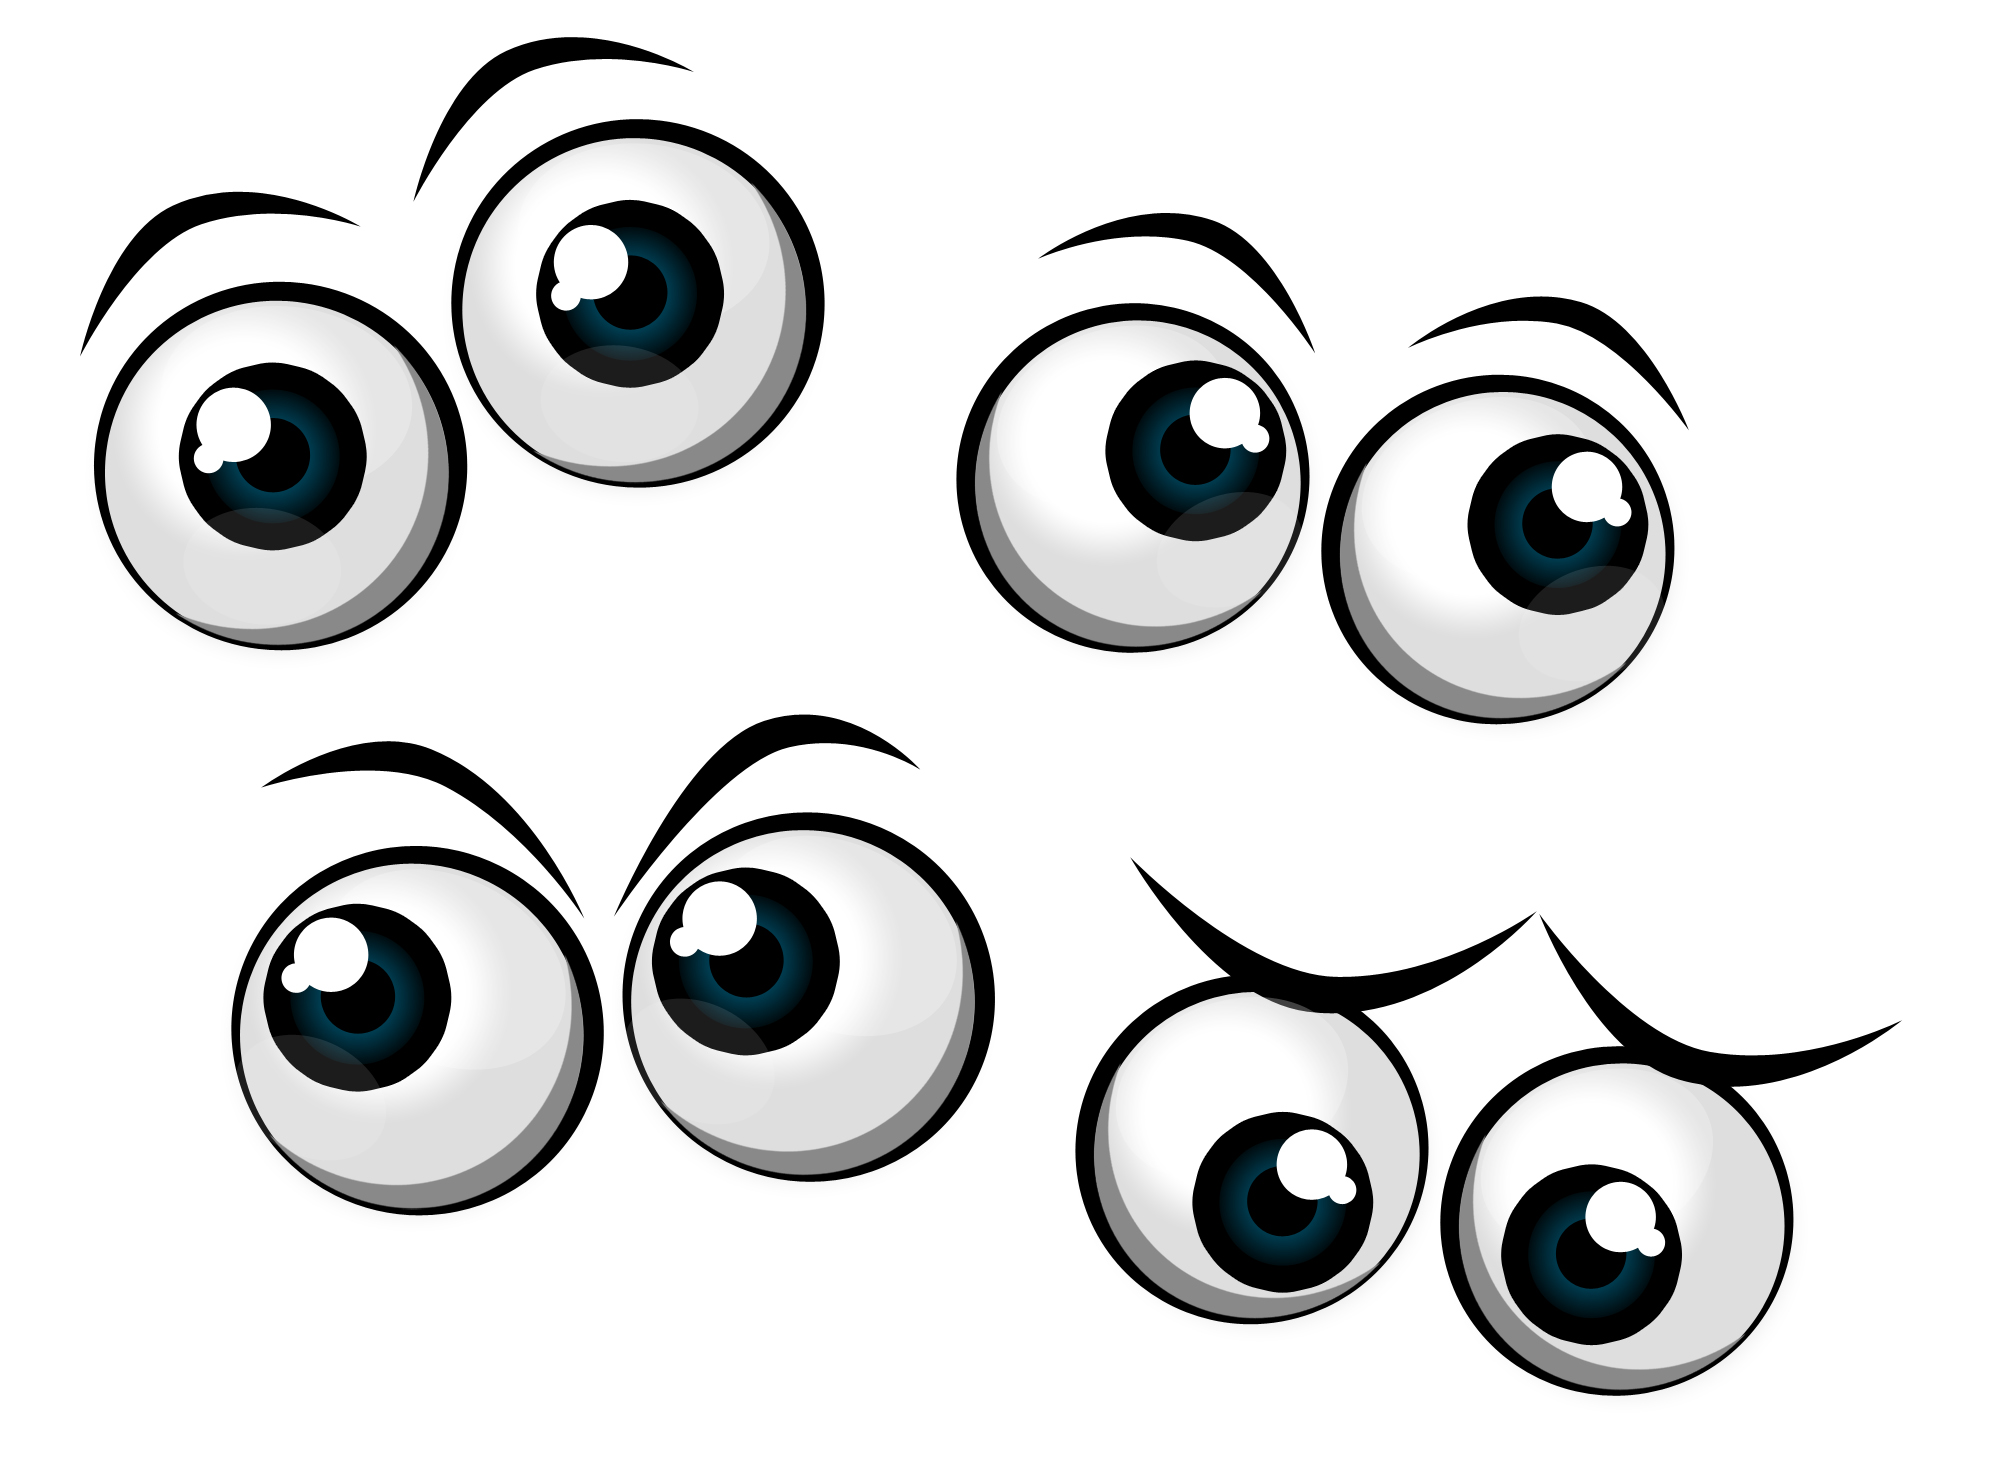 Free Cartoon Eyeballs Cliparts, Download Free Clip Art, Free.